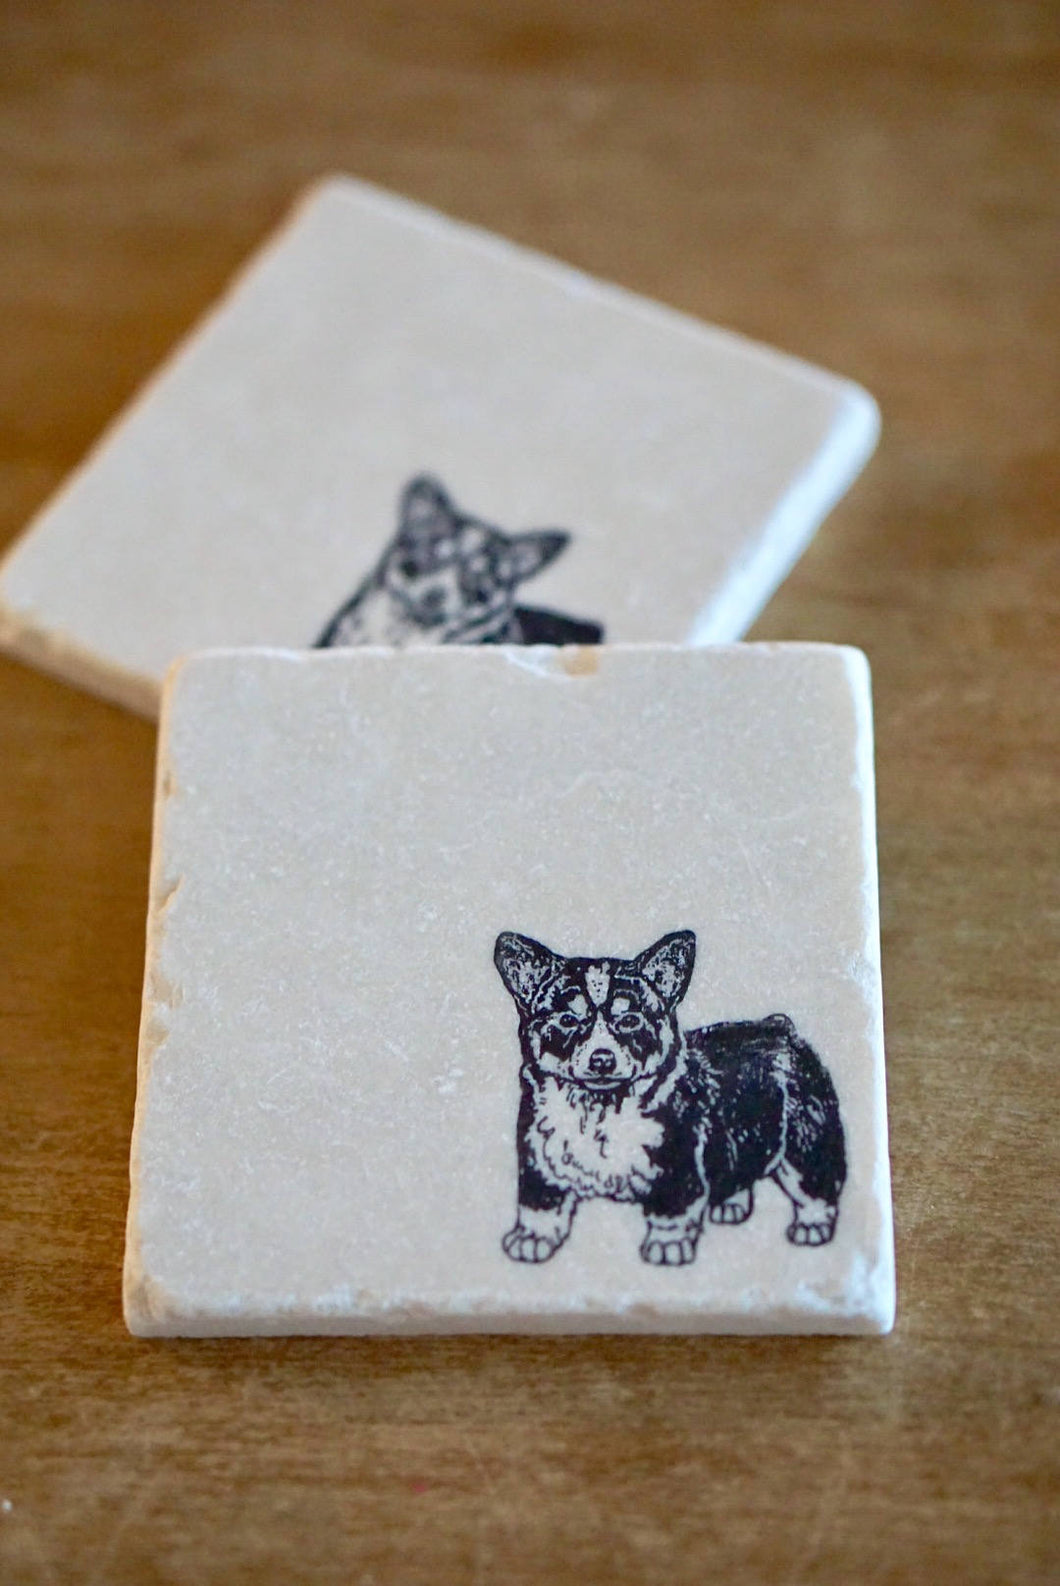 Corgi Dog Marble Coasters - Lace, Grace & Peonies